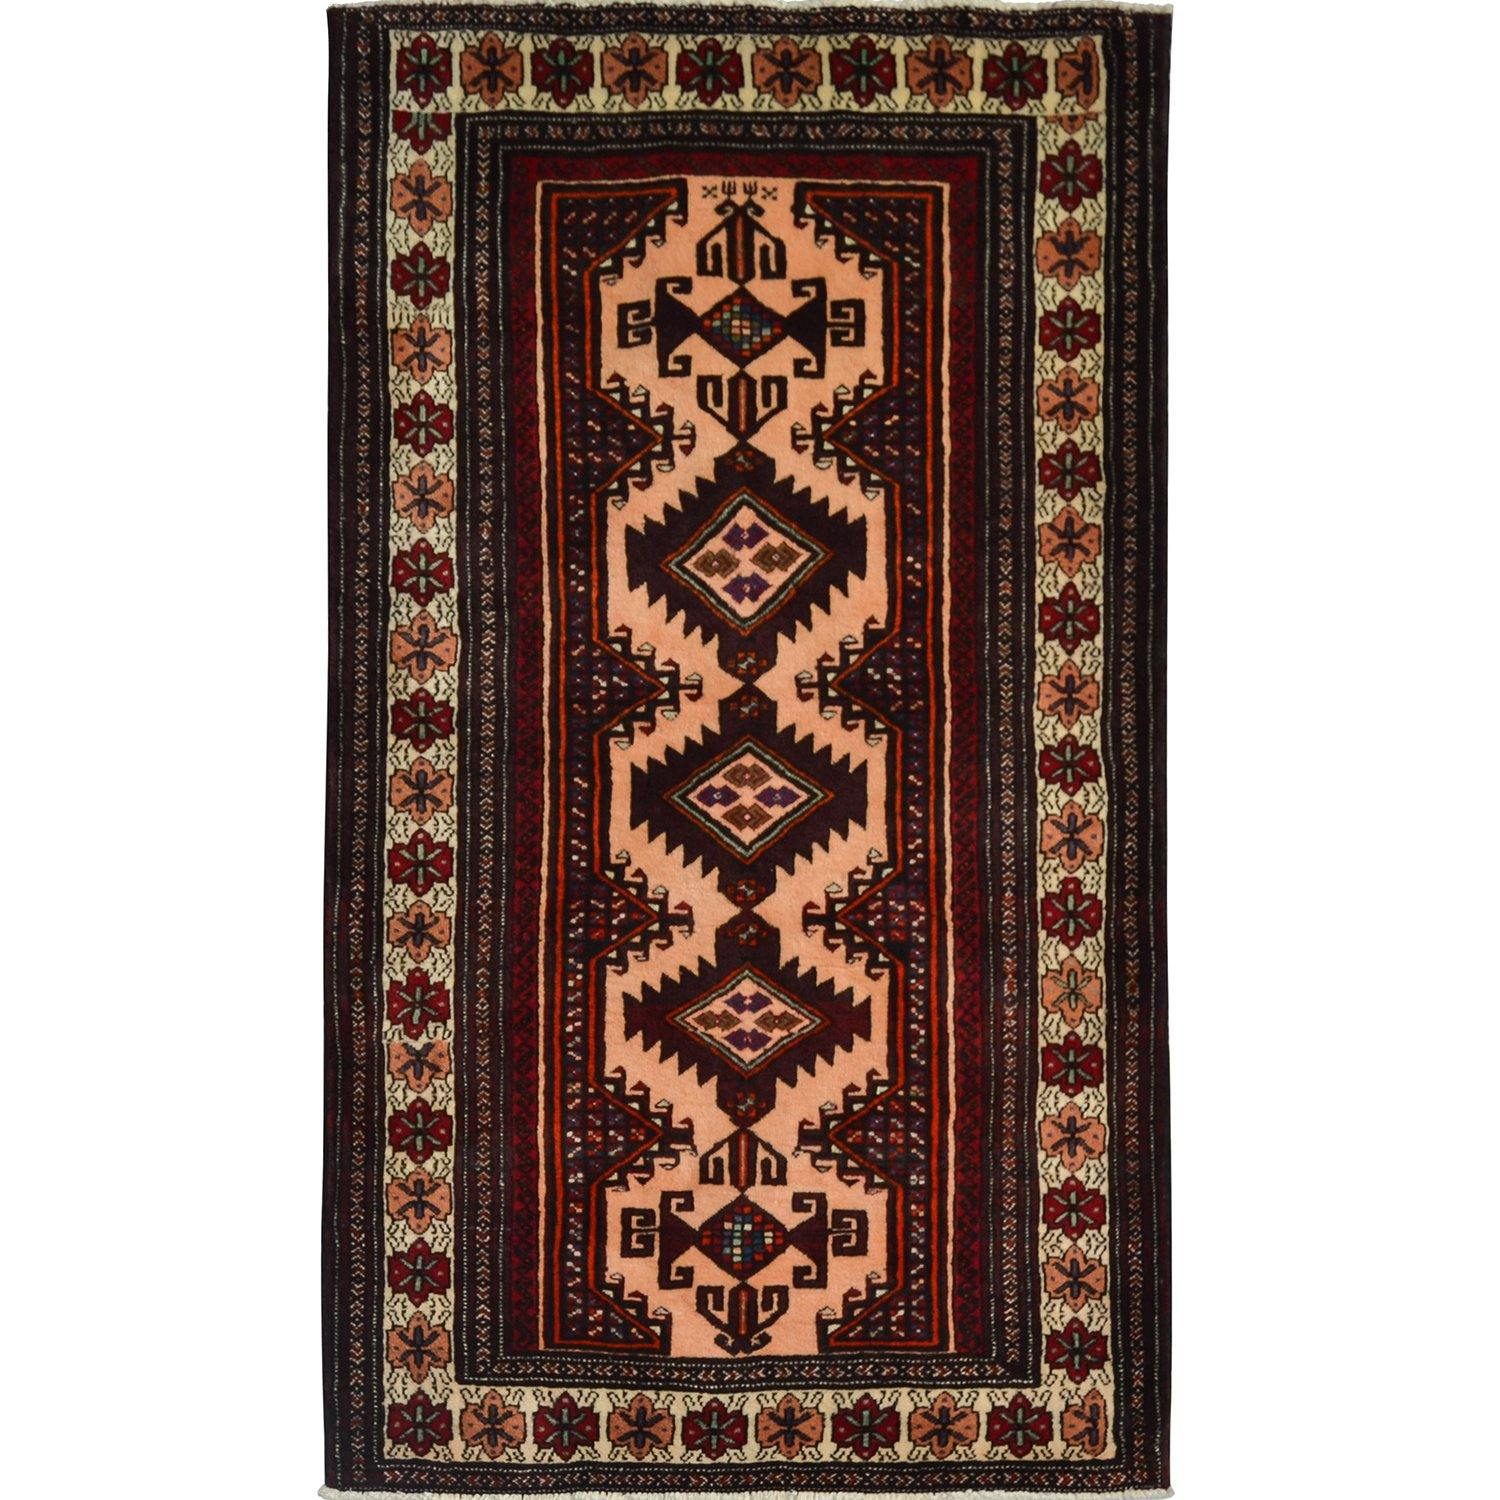 2021_20 Persian-Rug | House-of-Haghi | NewMarket | Auckland | NZ | Handmade Persian Rugs | Hand Knotted Persian Rugs